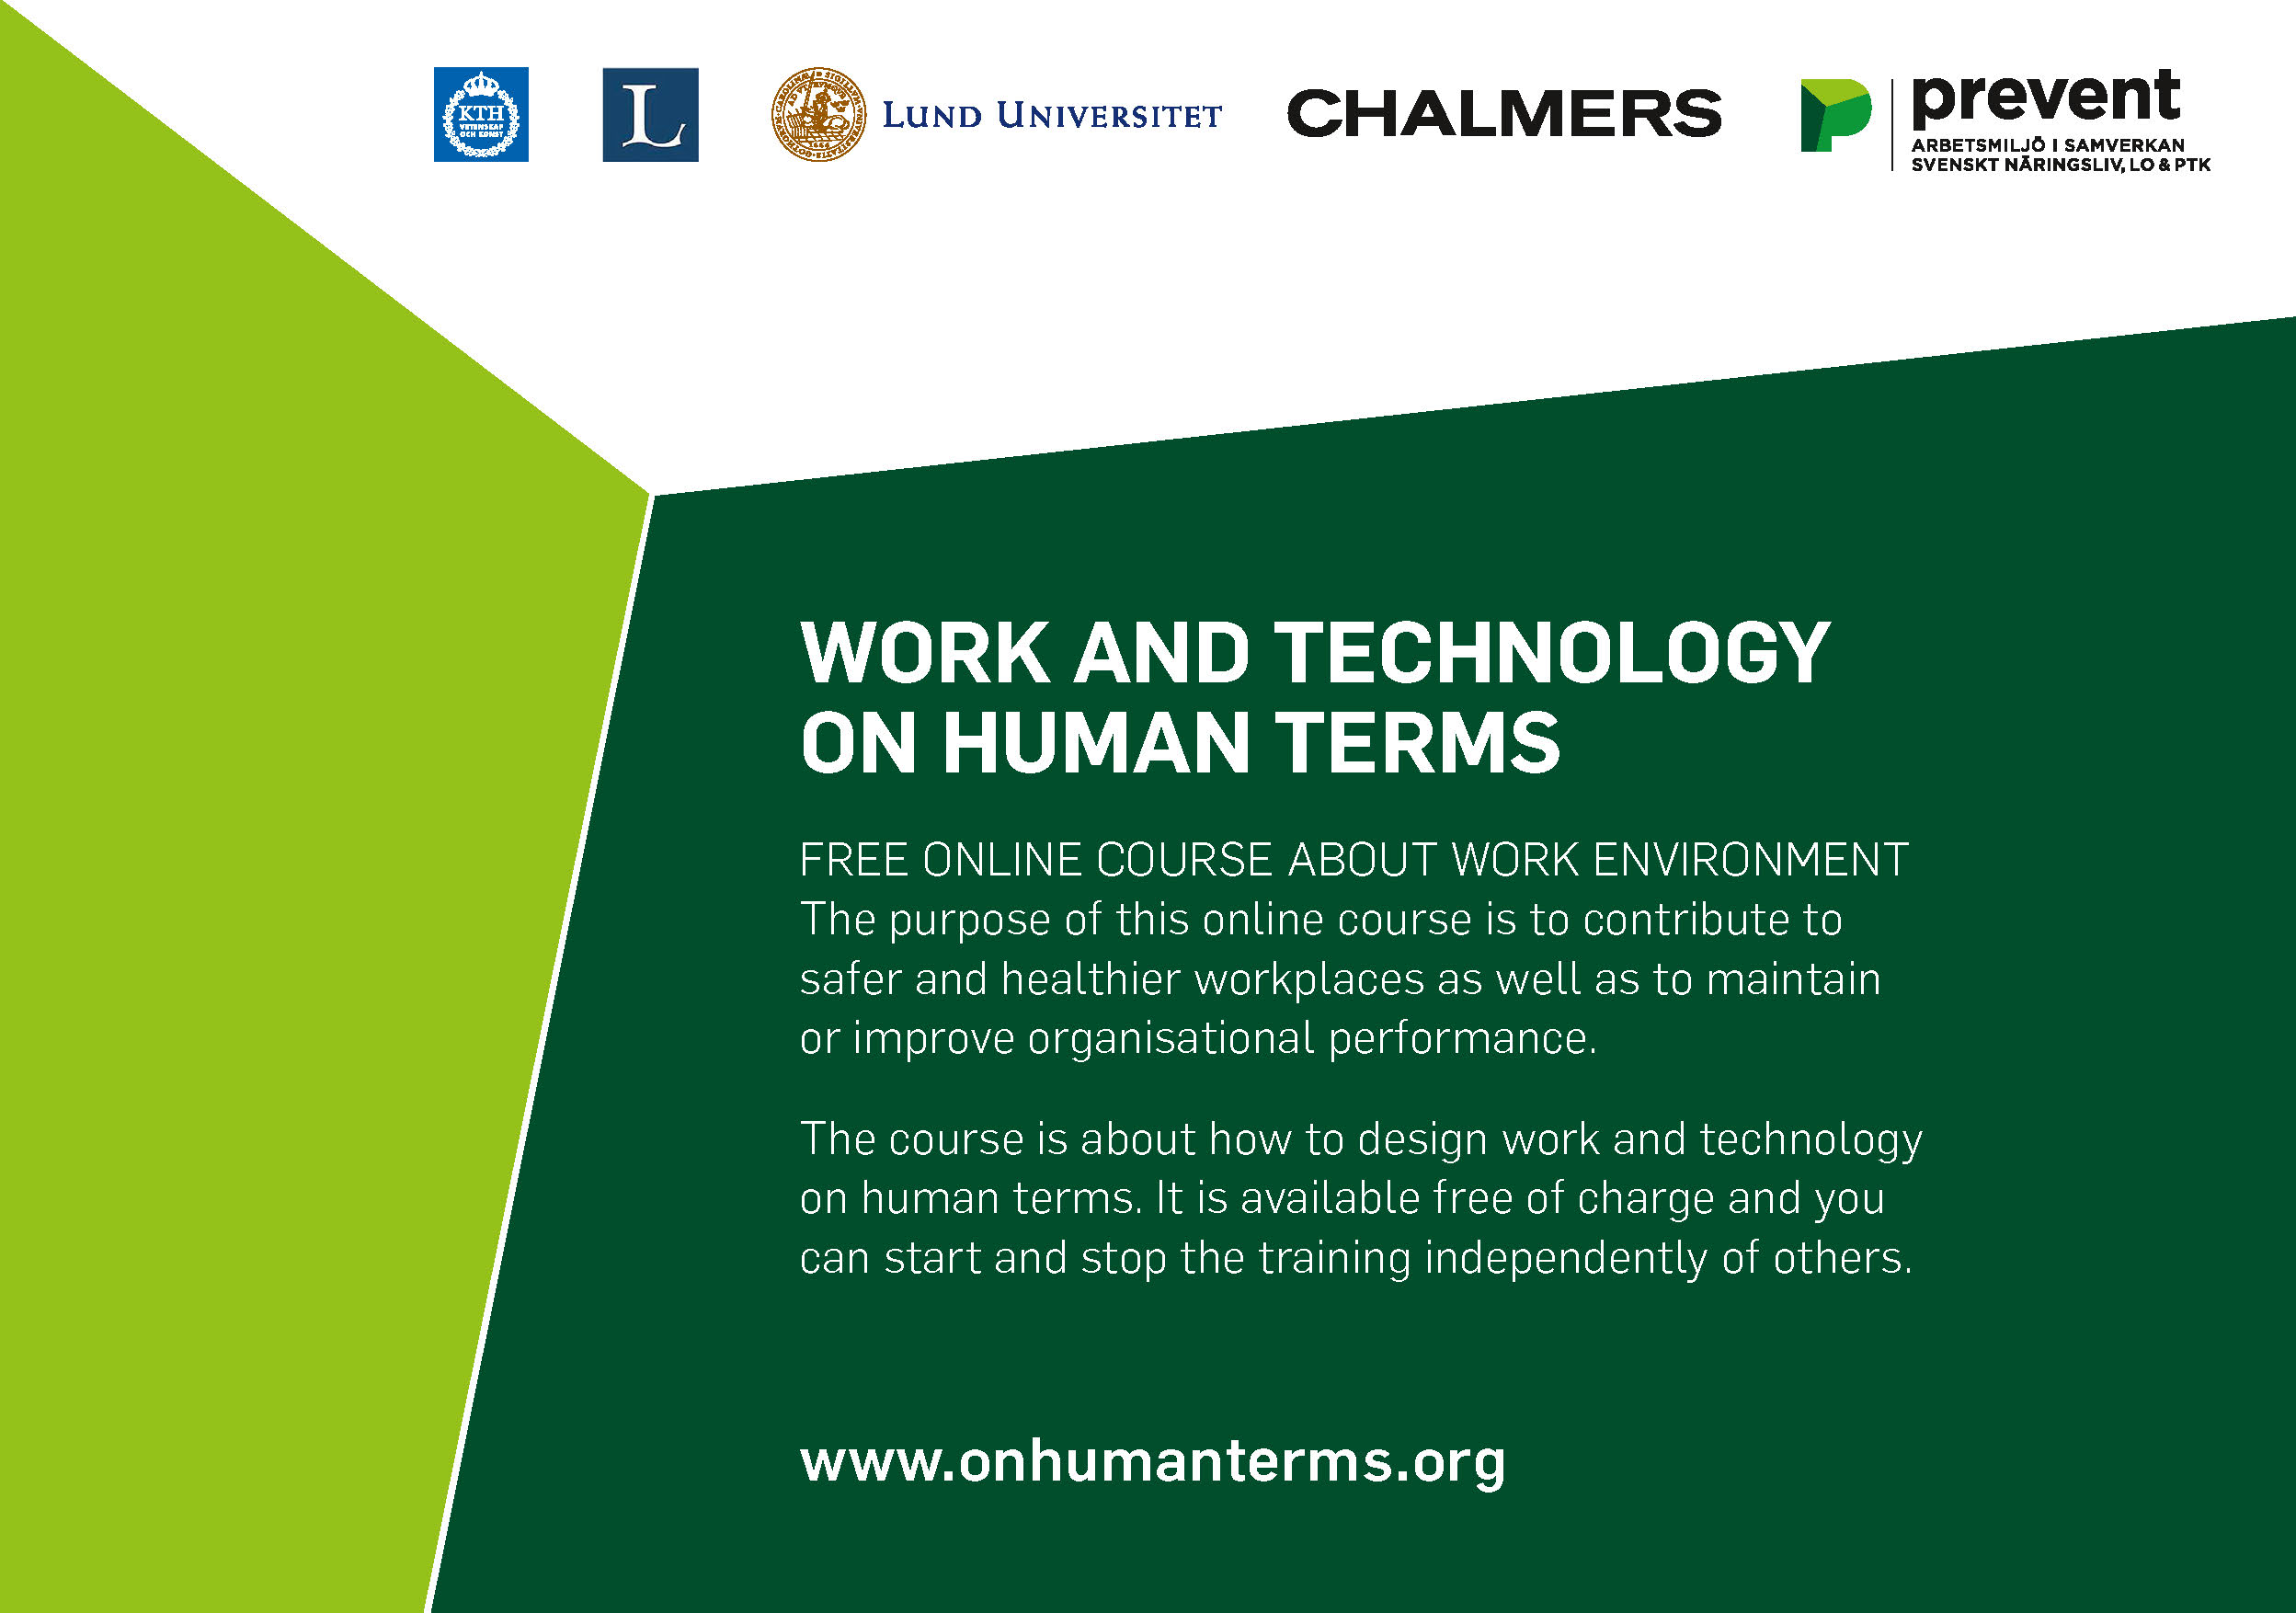 WORK AND TECHNOLOGY ON HUMAN TERMS - FREE ONLINE COURSE ABOUT WORK ENVIRONMENT